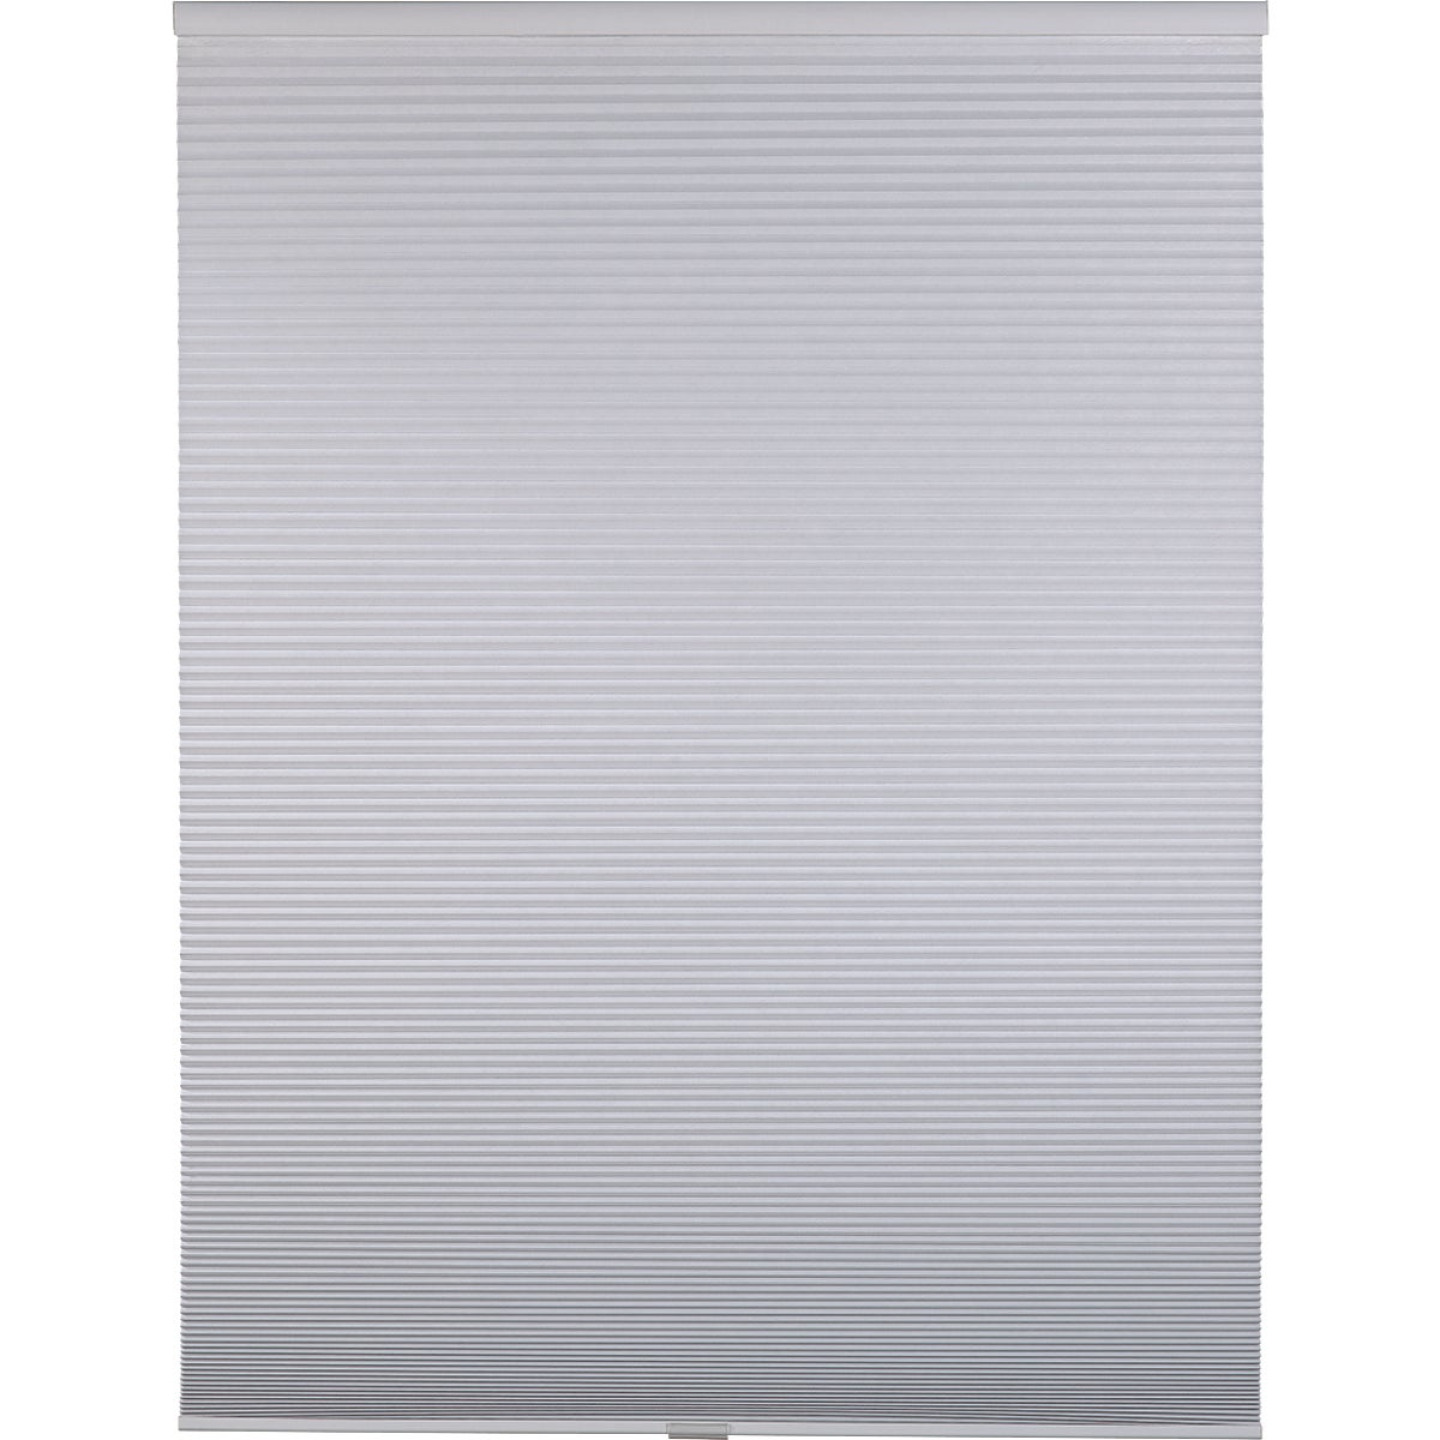 Home Impressions 1 In. Room Darkening Cellular White 29 In. x 72 In. Cordless Shade Image 1